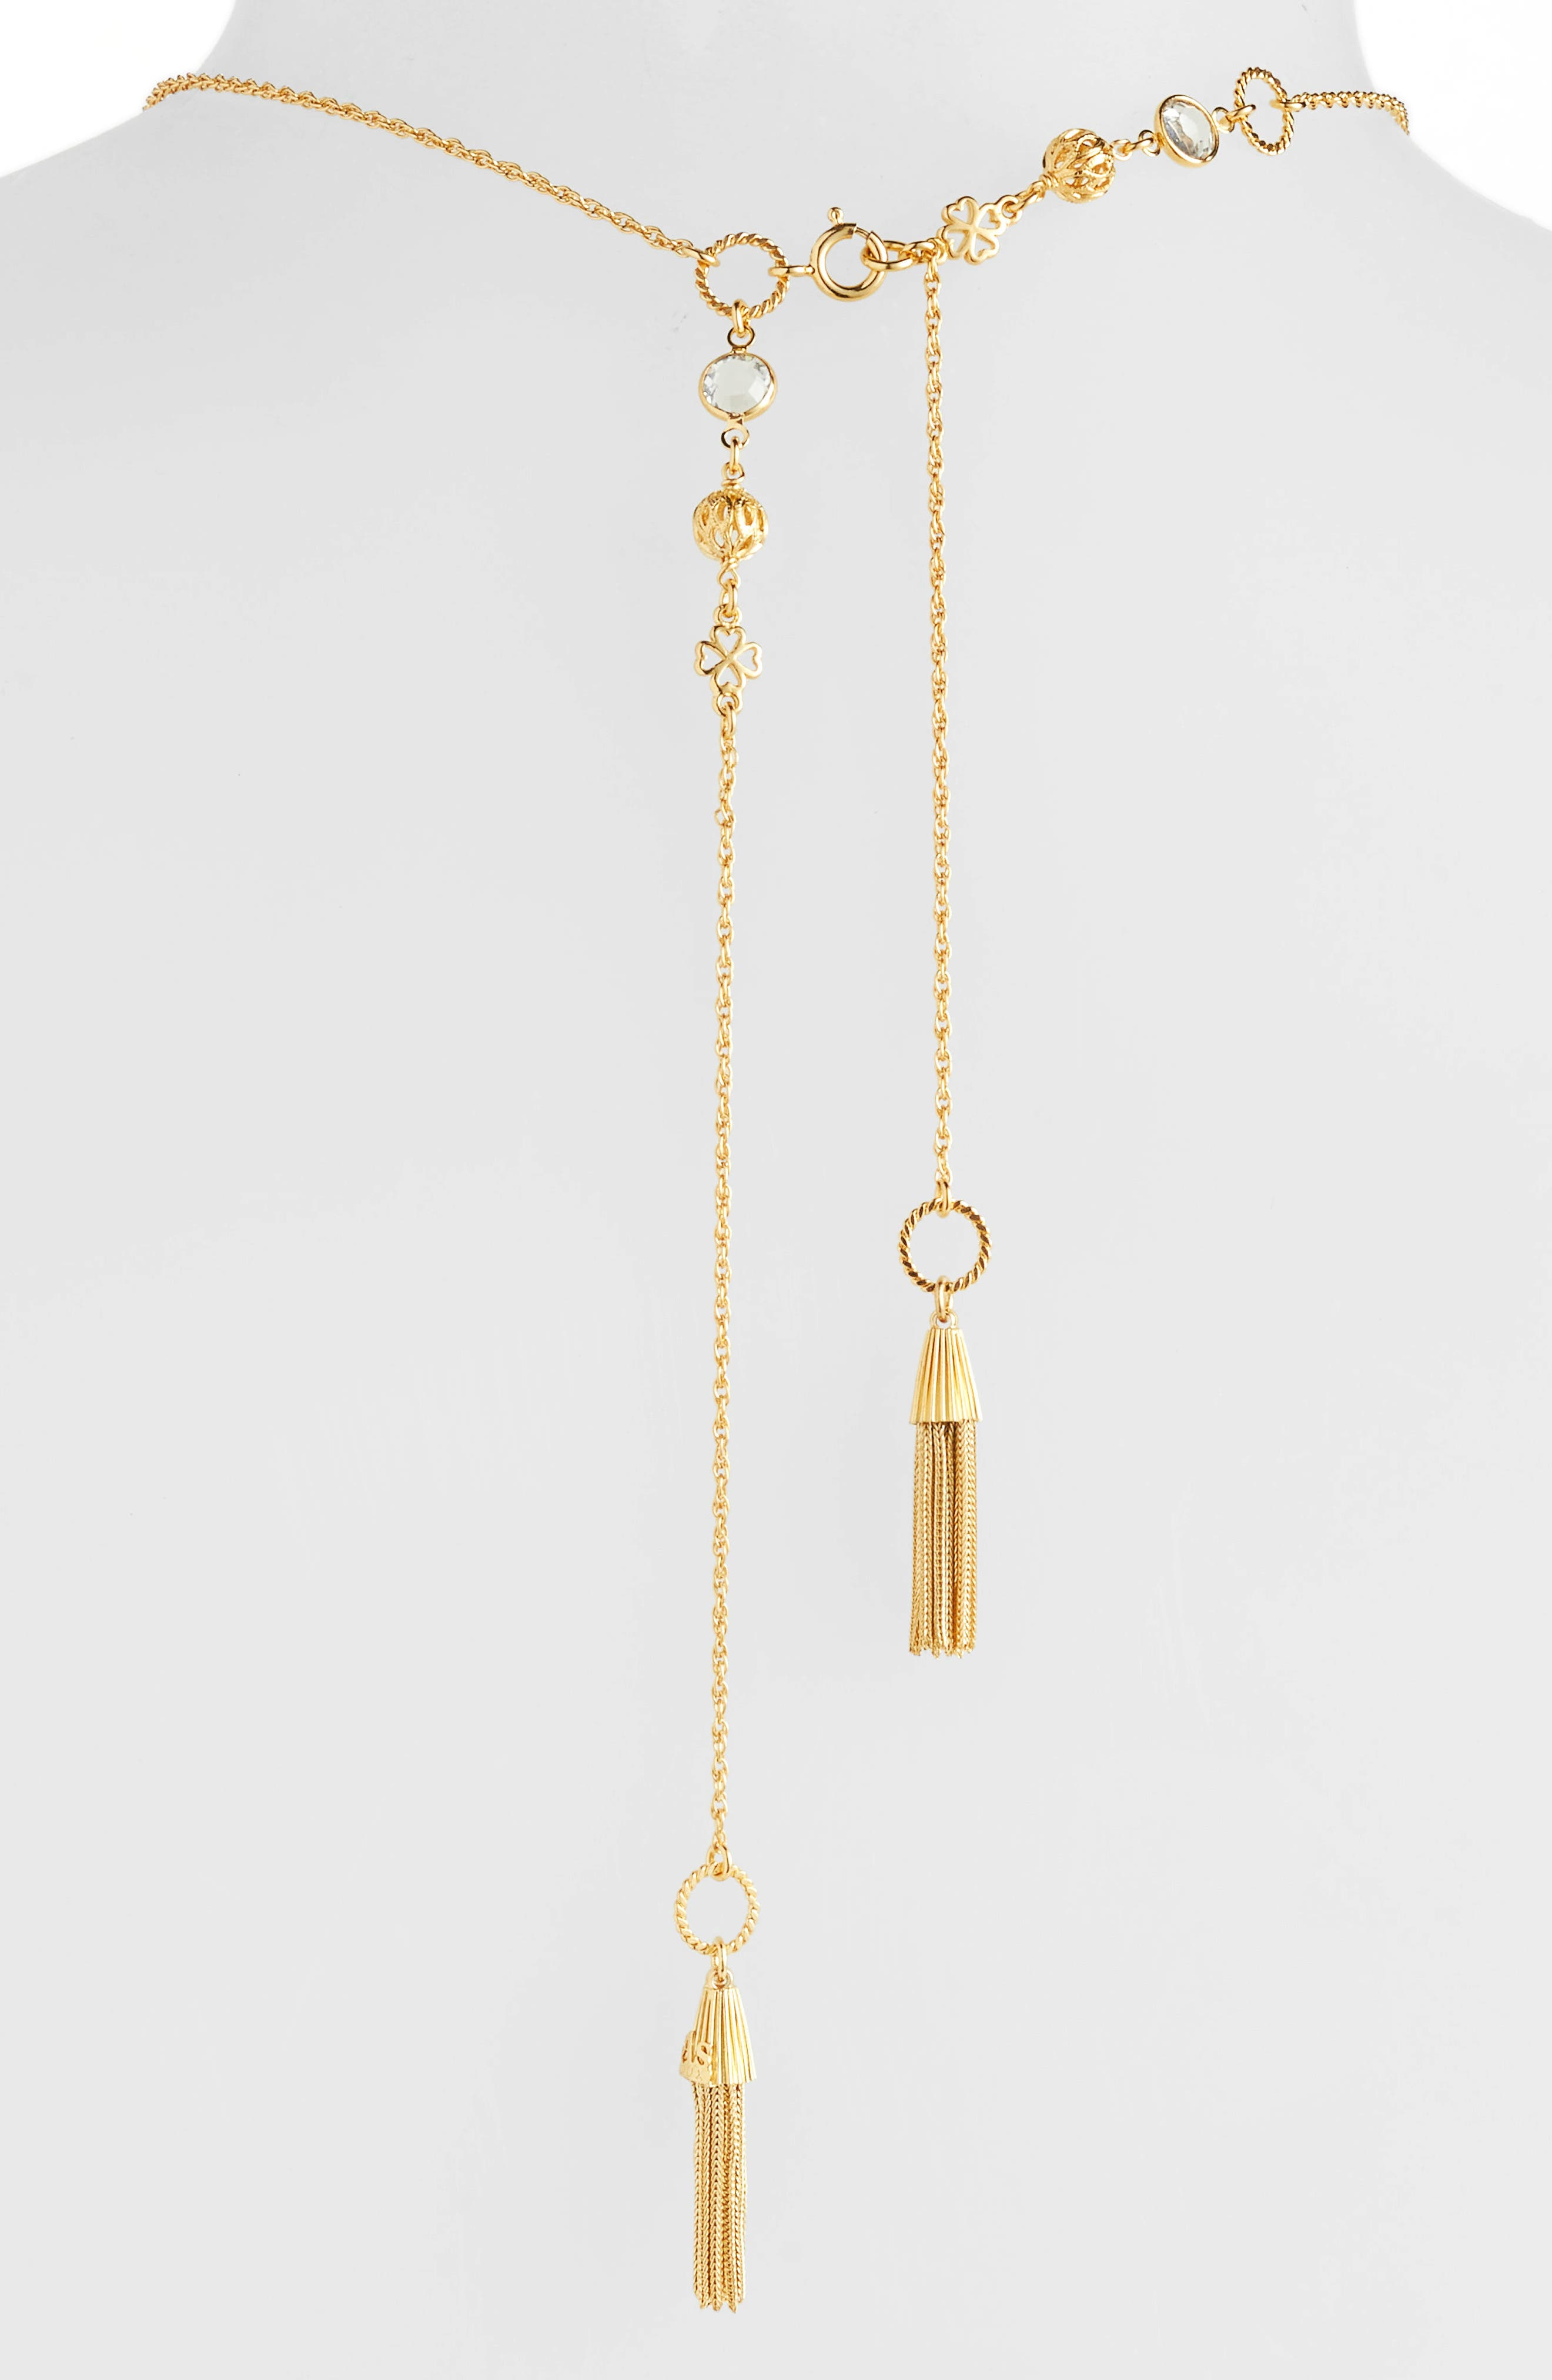 Tresse Long Lariat Necklace,                             Alternate thumbnail 3, color,                             YELLOW GOLD